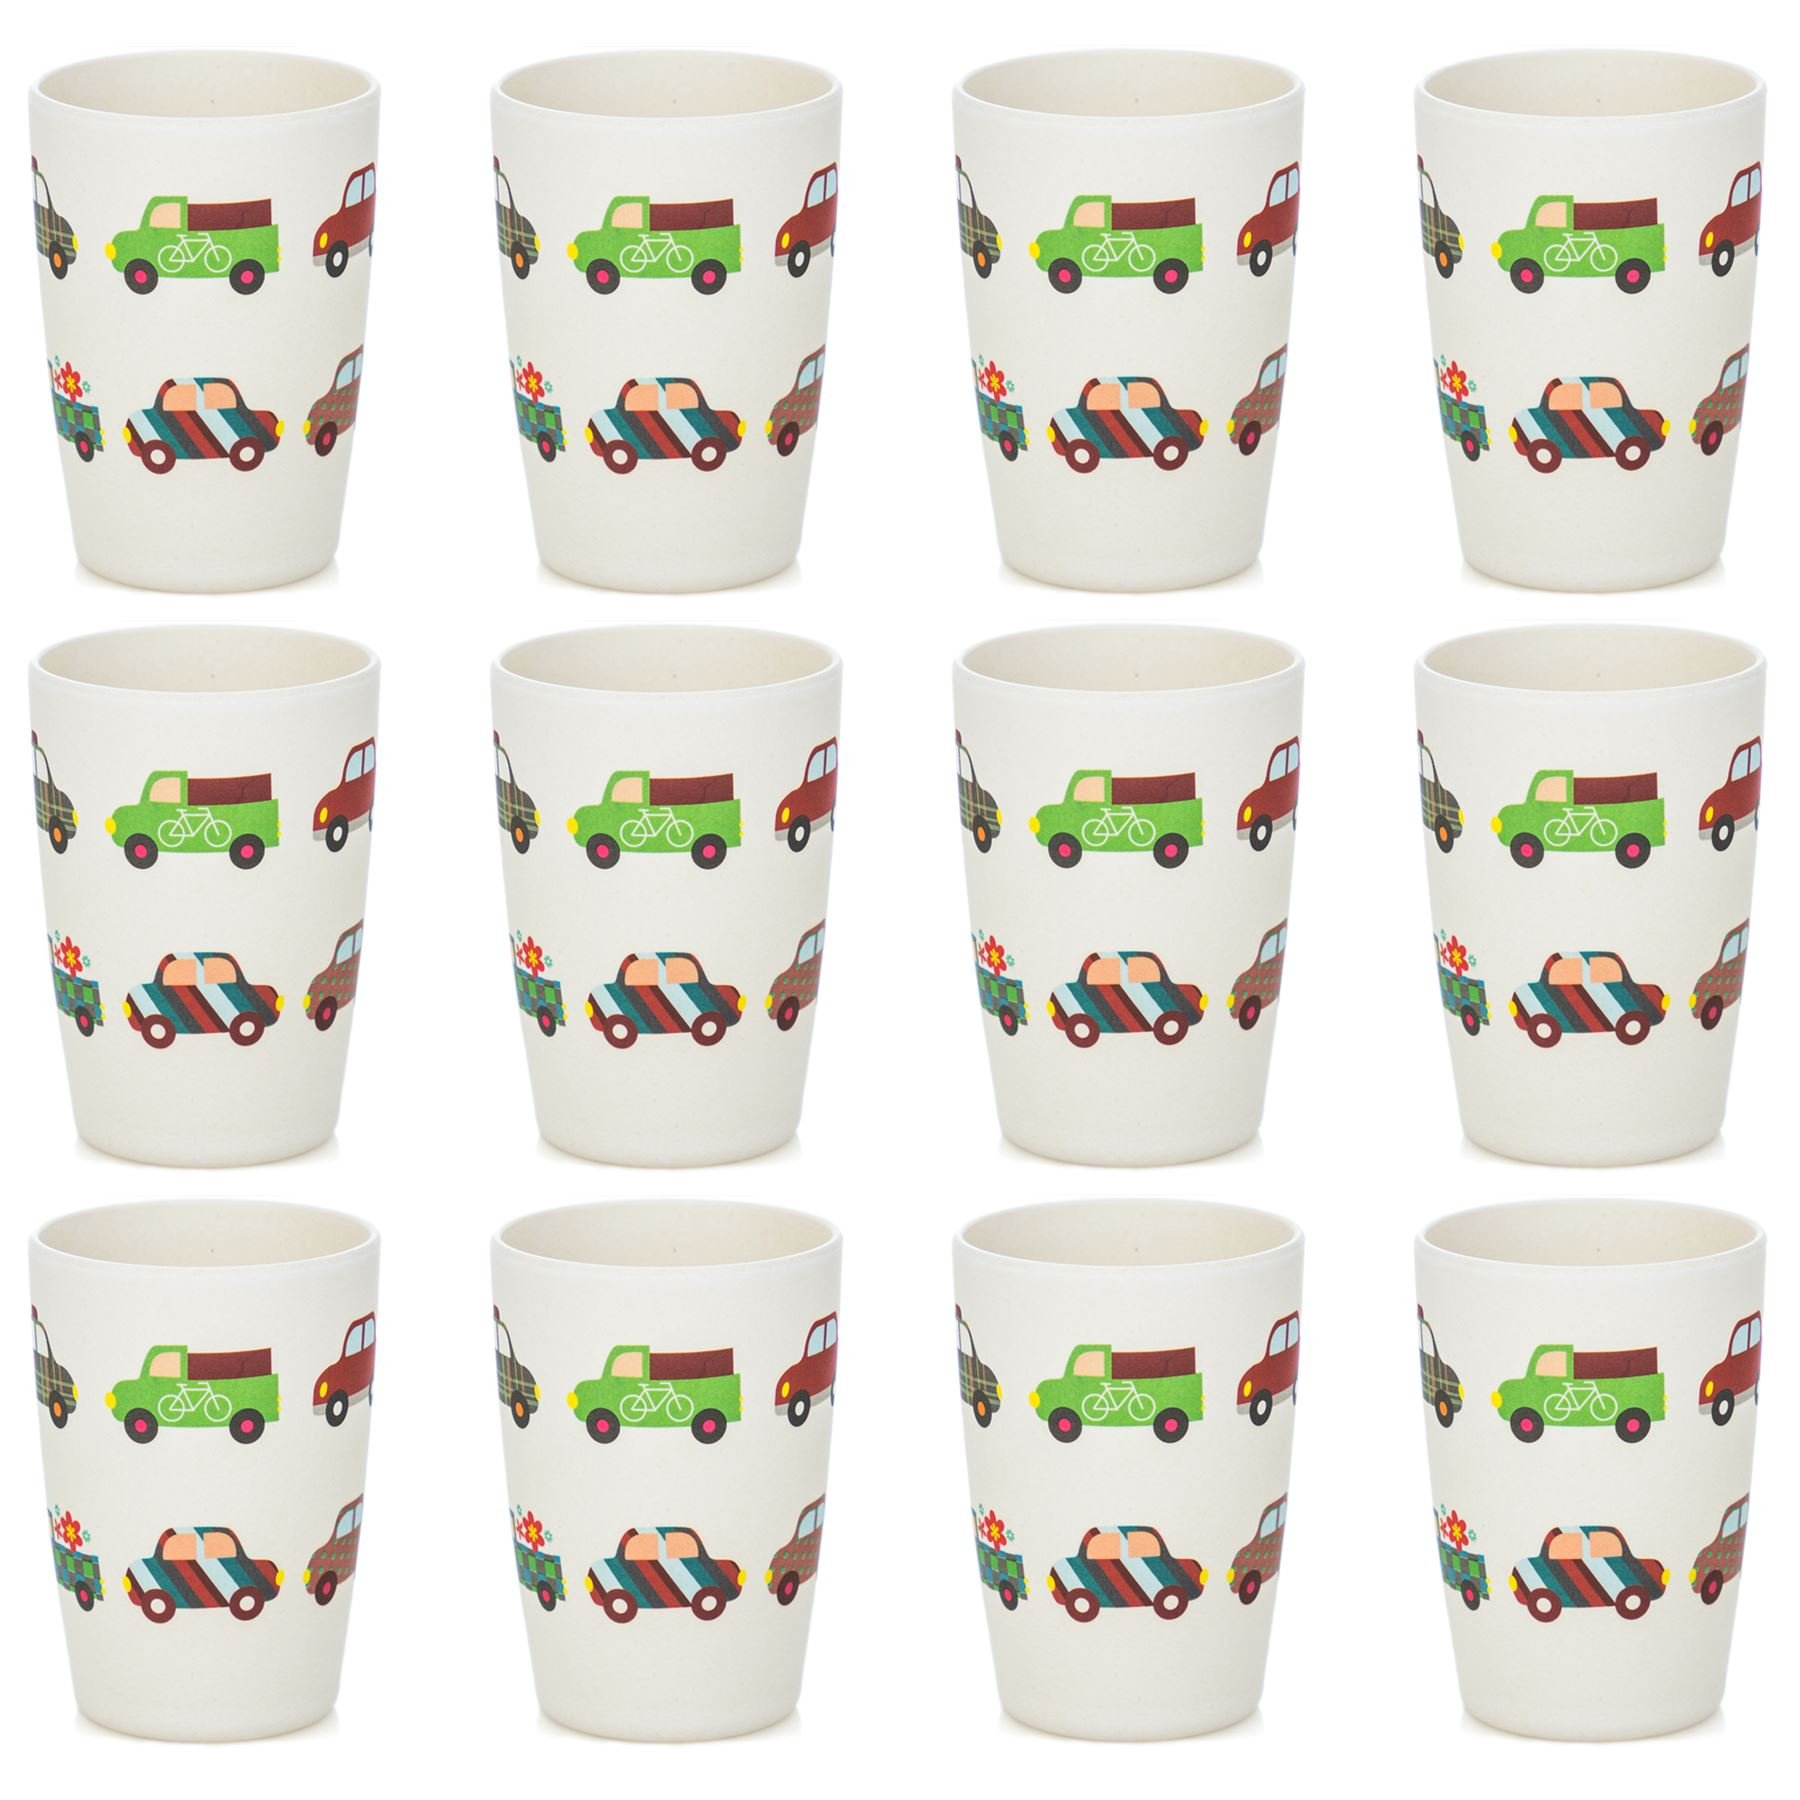 Tiny Dining Children's Bamboo Fibre Juice Cup - Cars - Pack of 12 by Tiny Dining